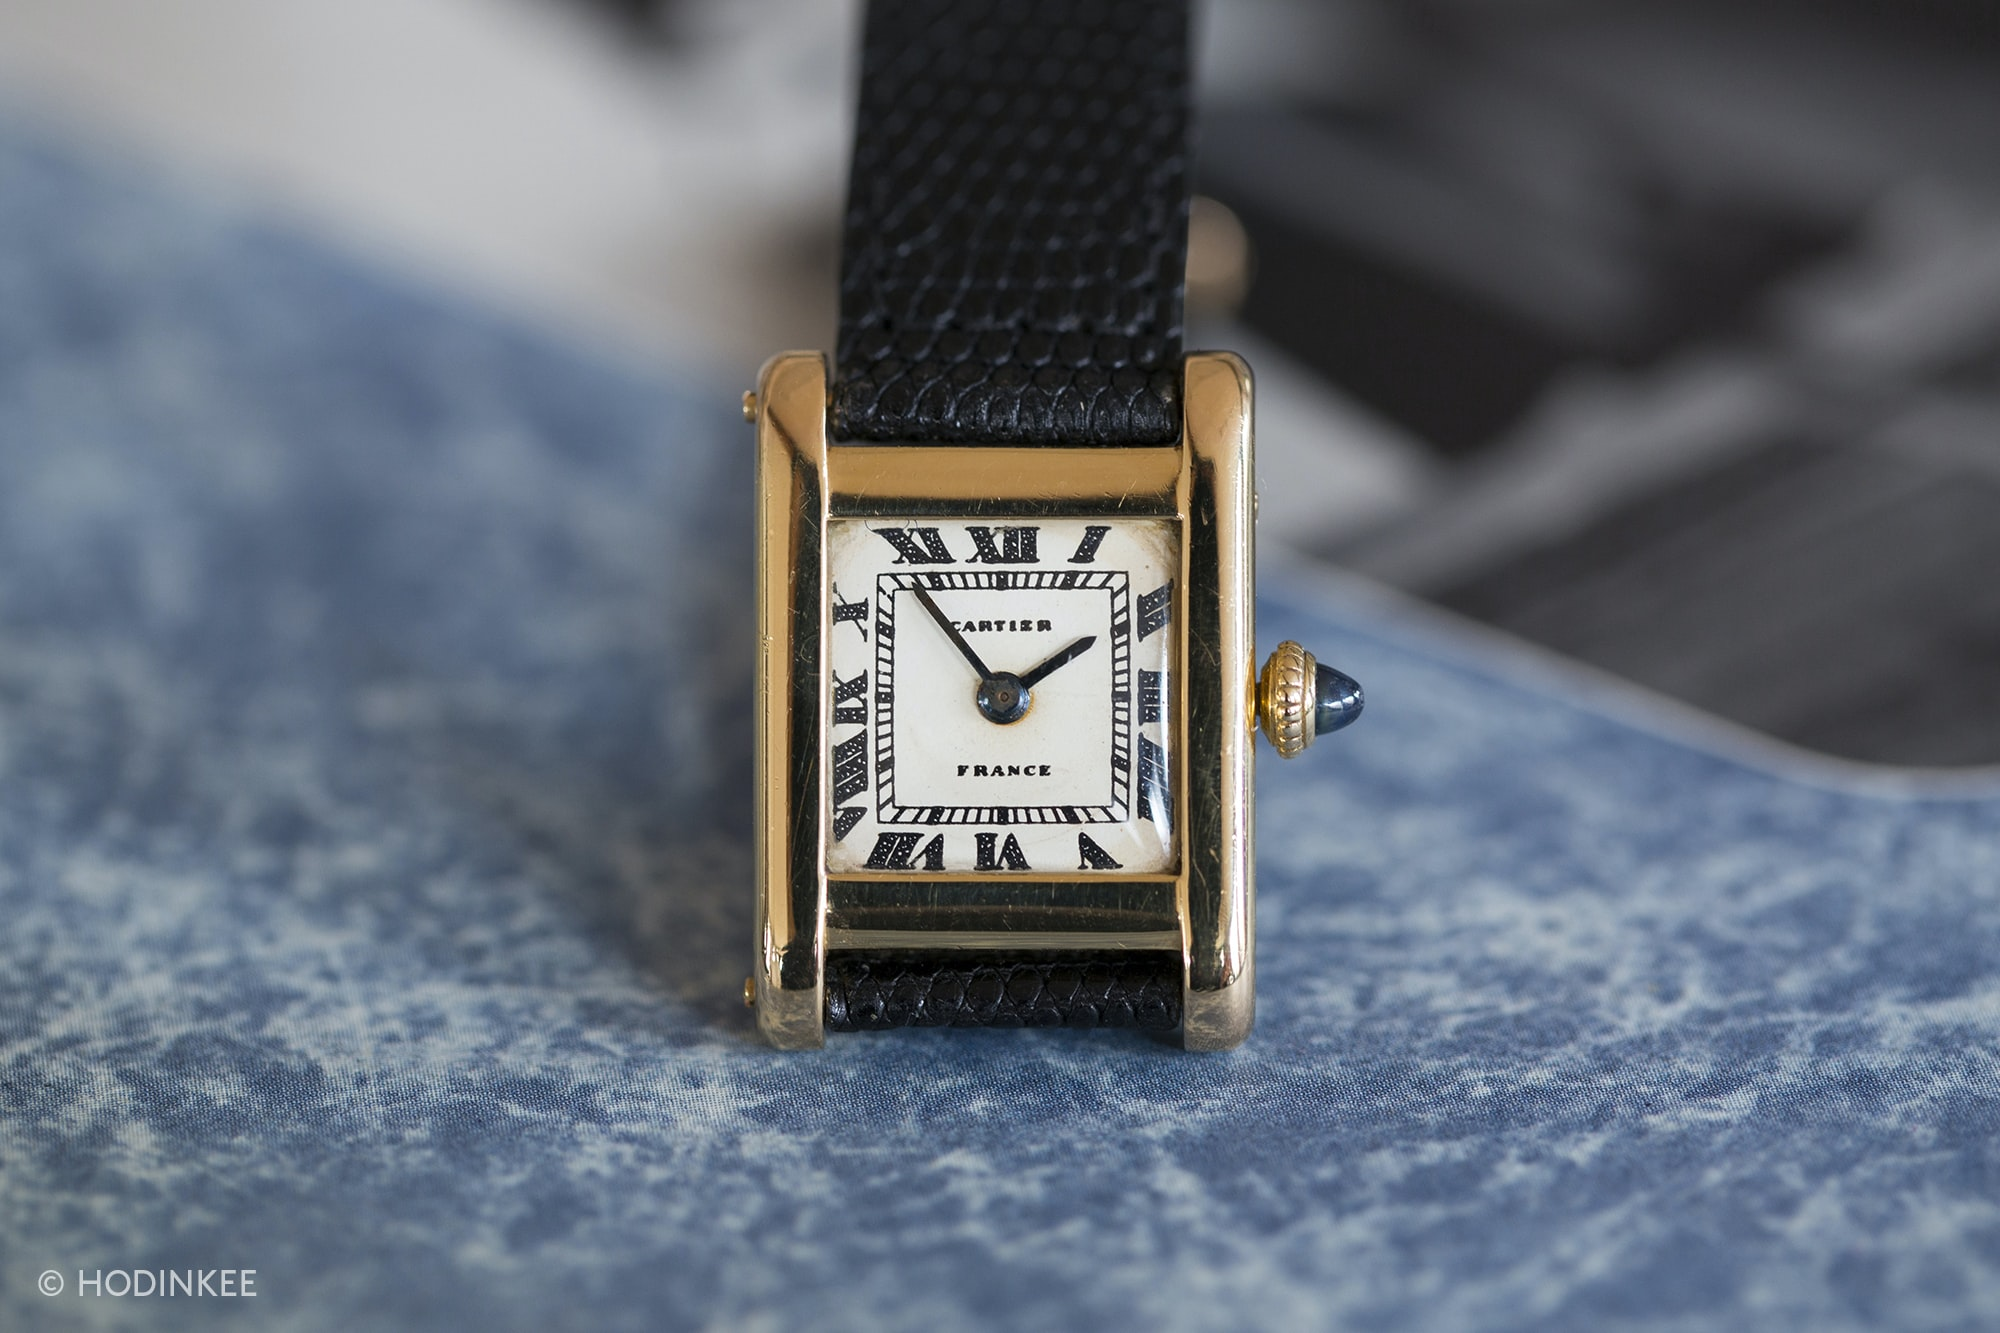 jackie o watch Hands-On: The Cartier Tank That Belonged To Jacqueline Kennedy Onassis Hands-On: The Cartier Tank That Belonged To Jacqueline Kennedy Onassis B89A0230 copy